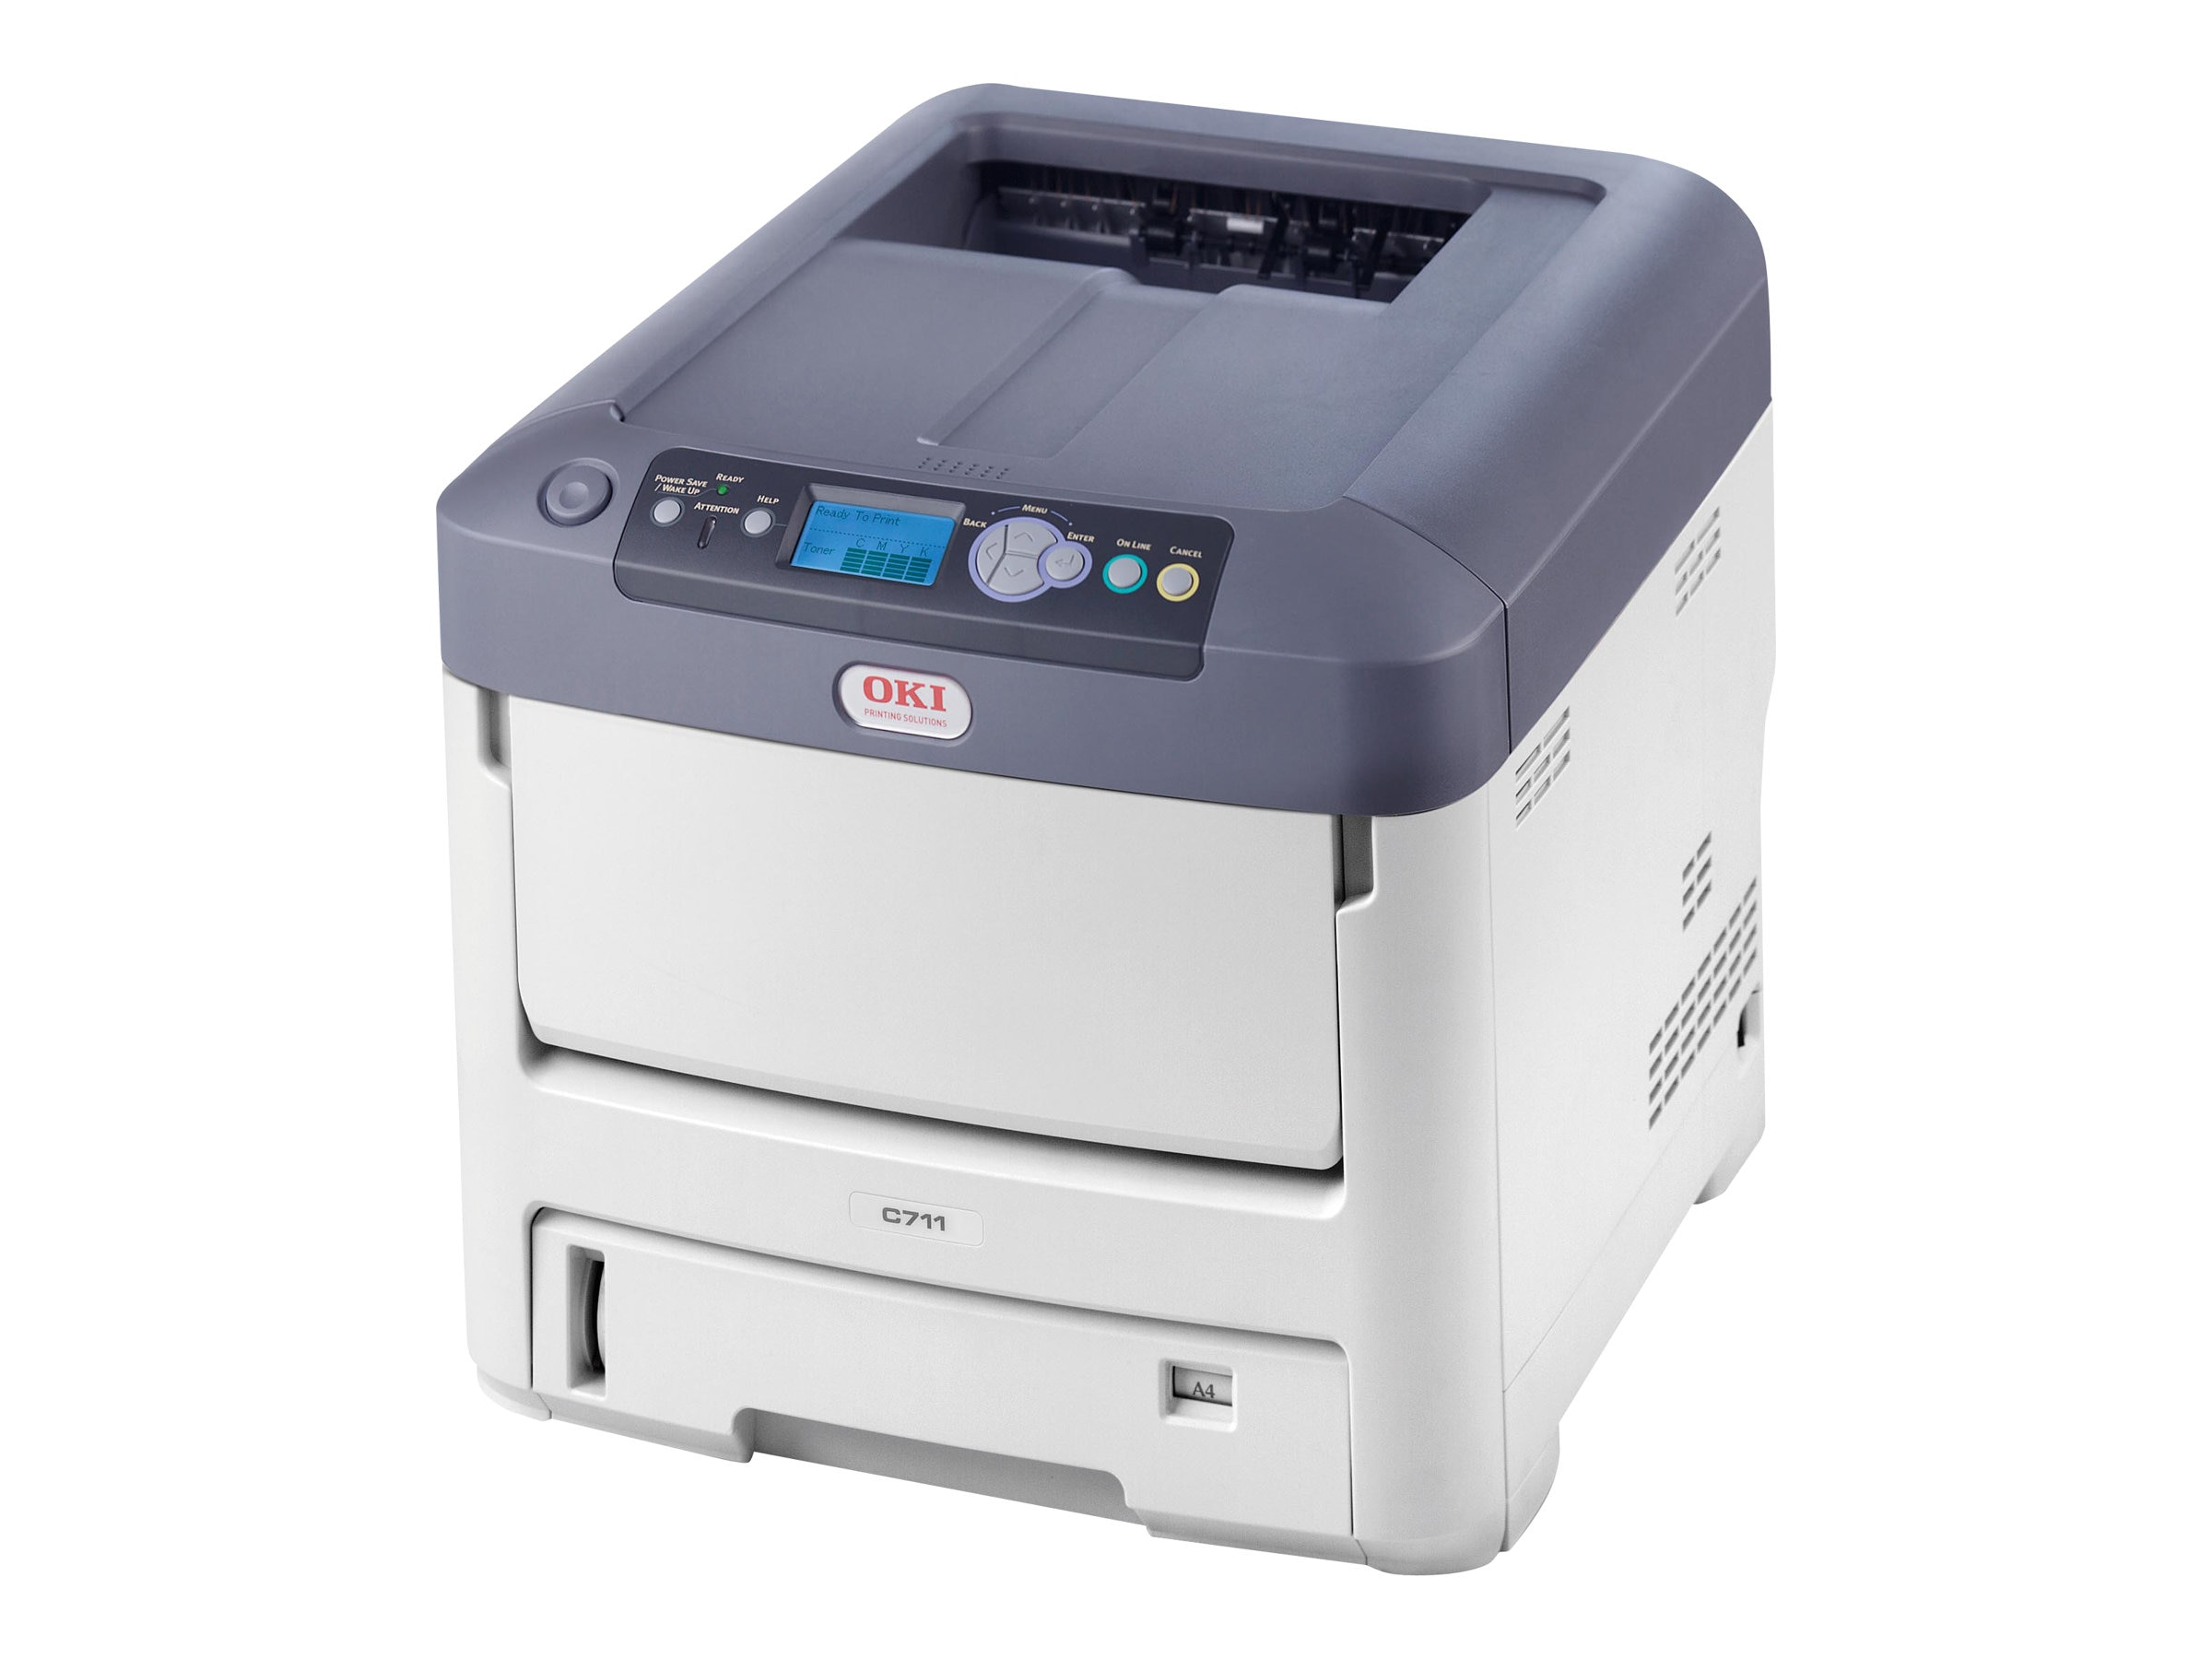 Oki C711dn Digital Color Printer, 62433503